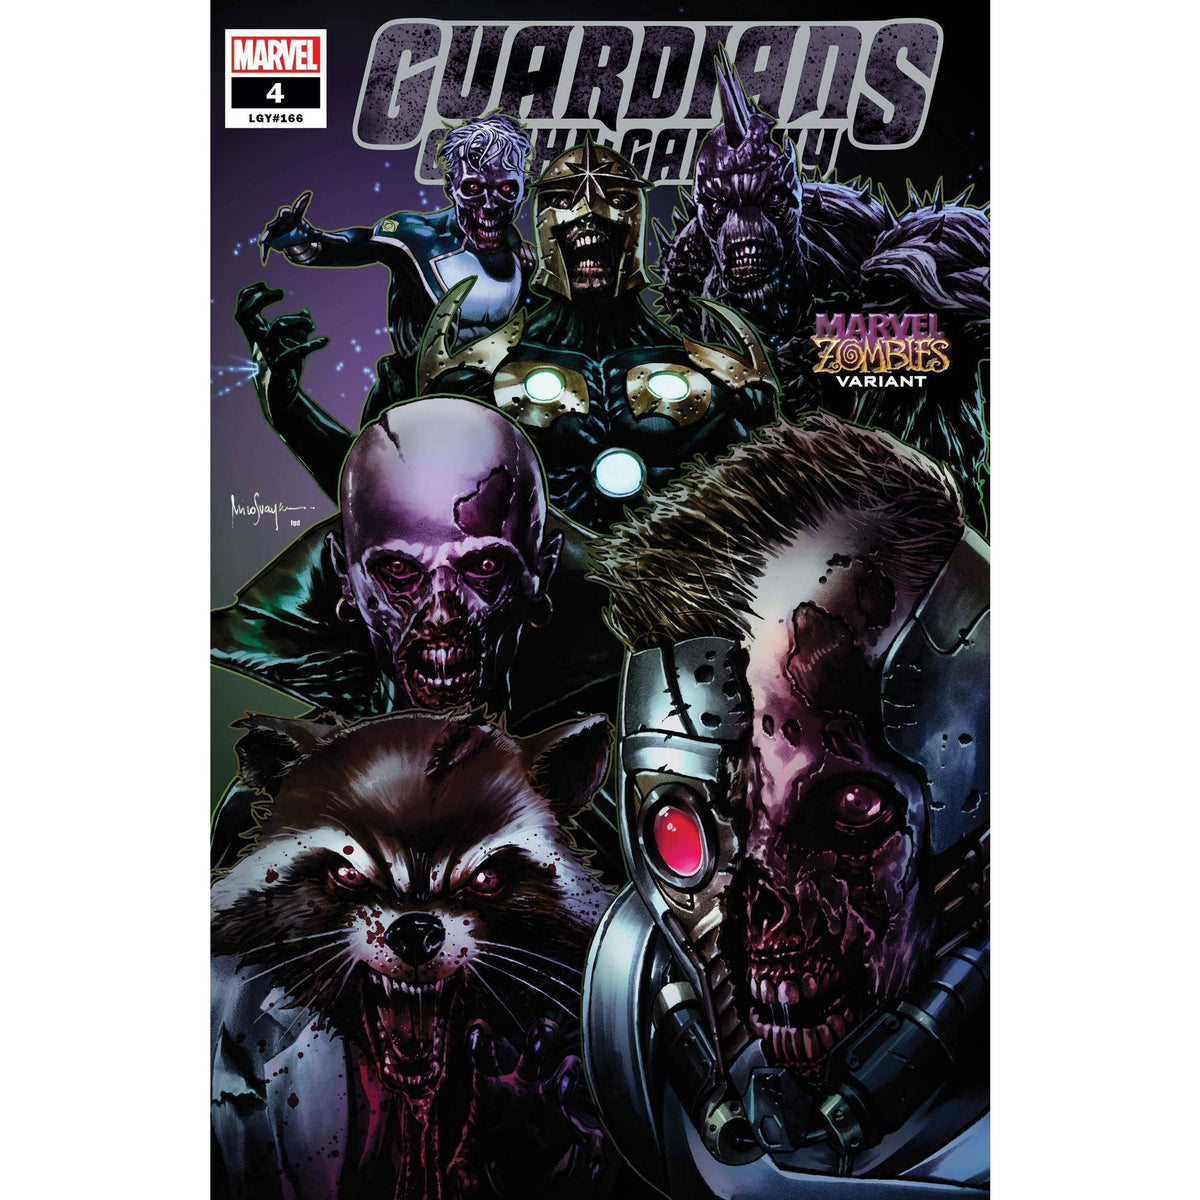 GUARDIANS OF THE GALAXY #4 - SUAYAN MARVEL ZOMBIES VARIANT COVER